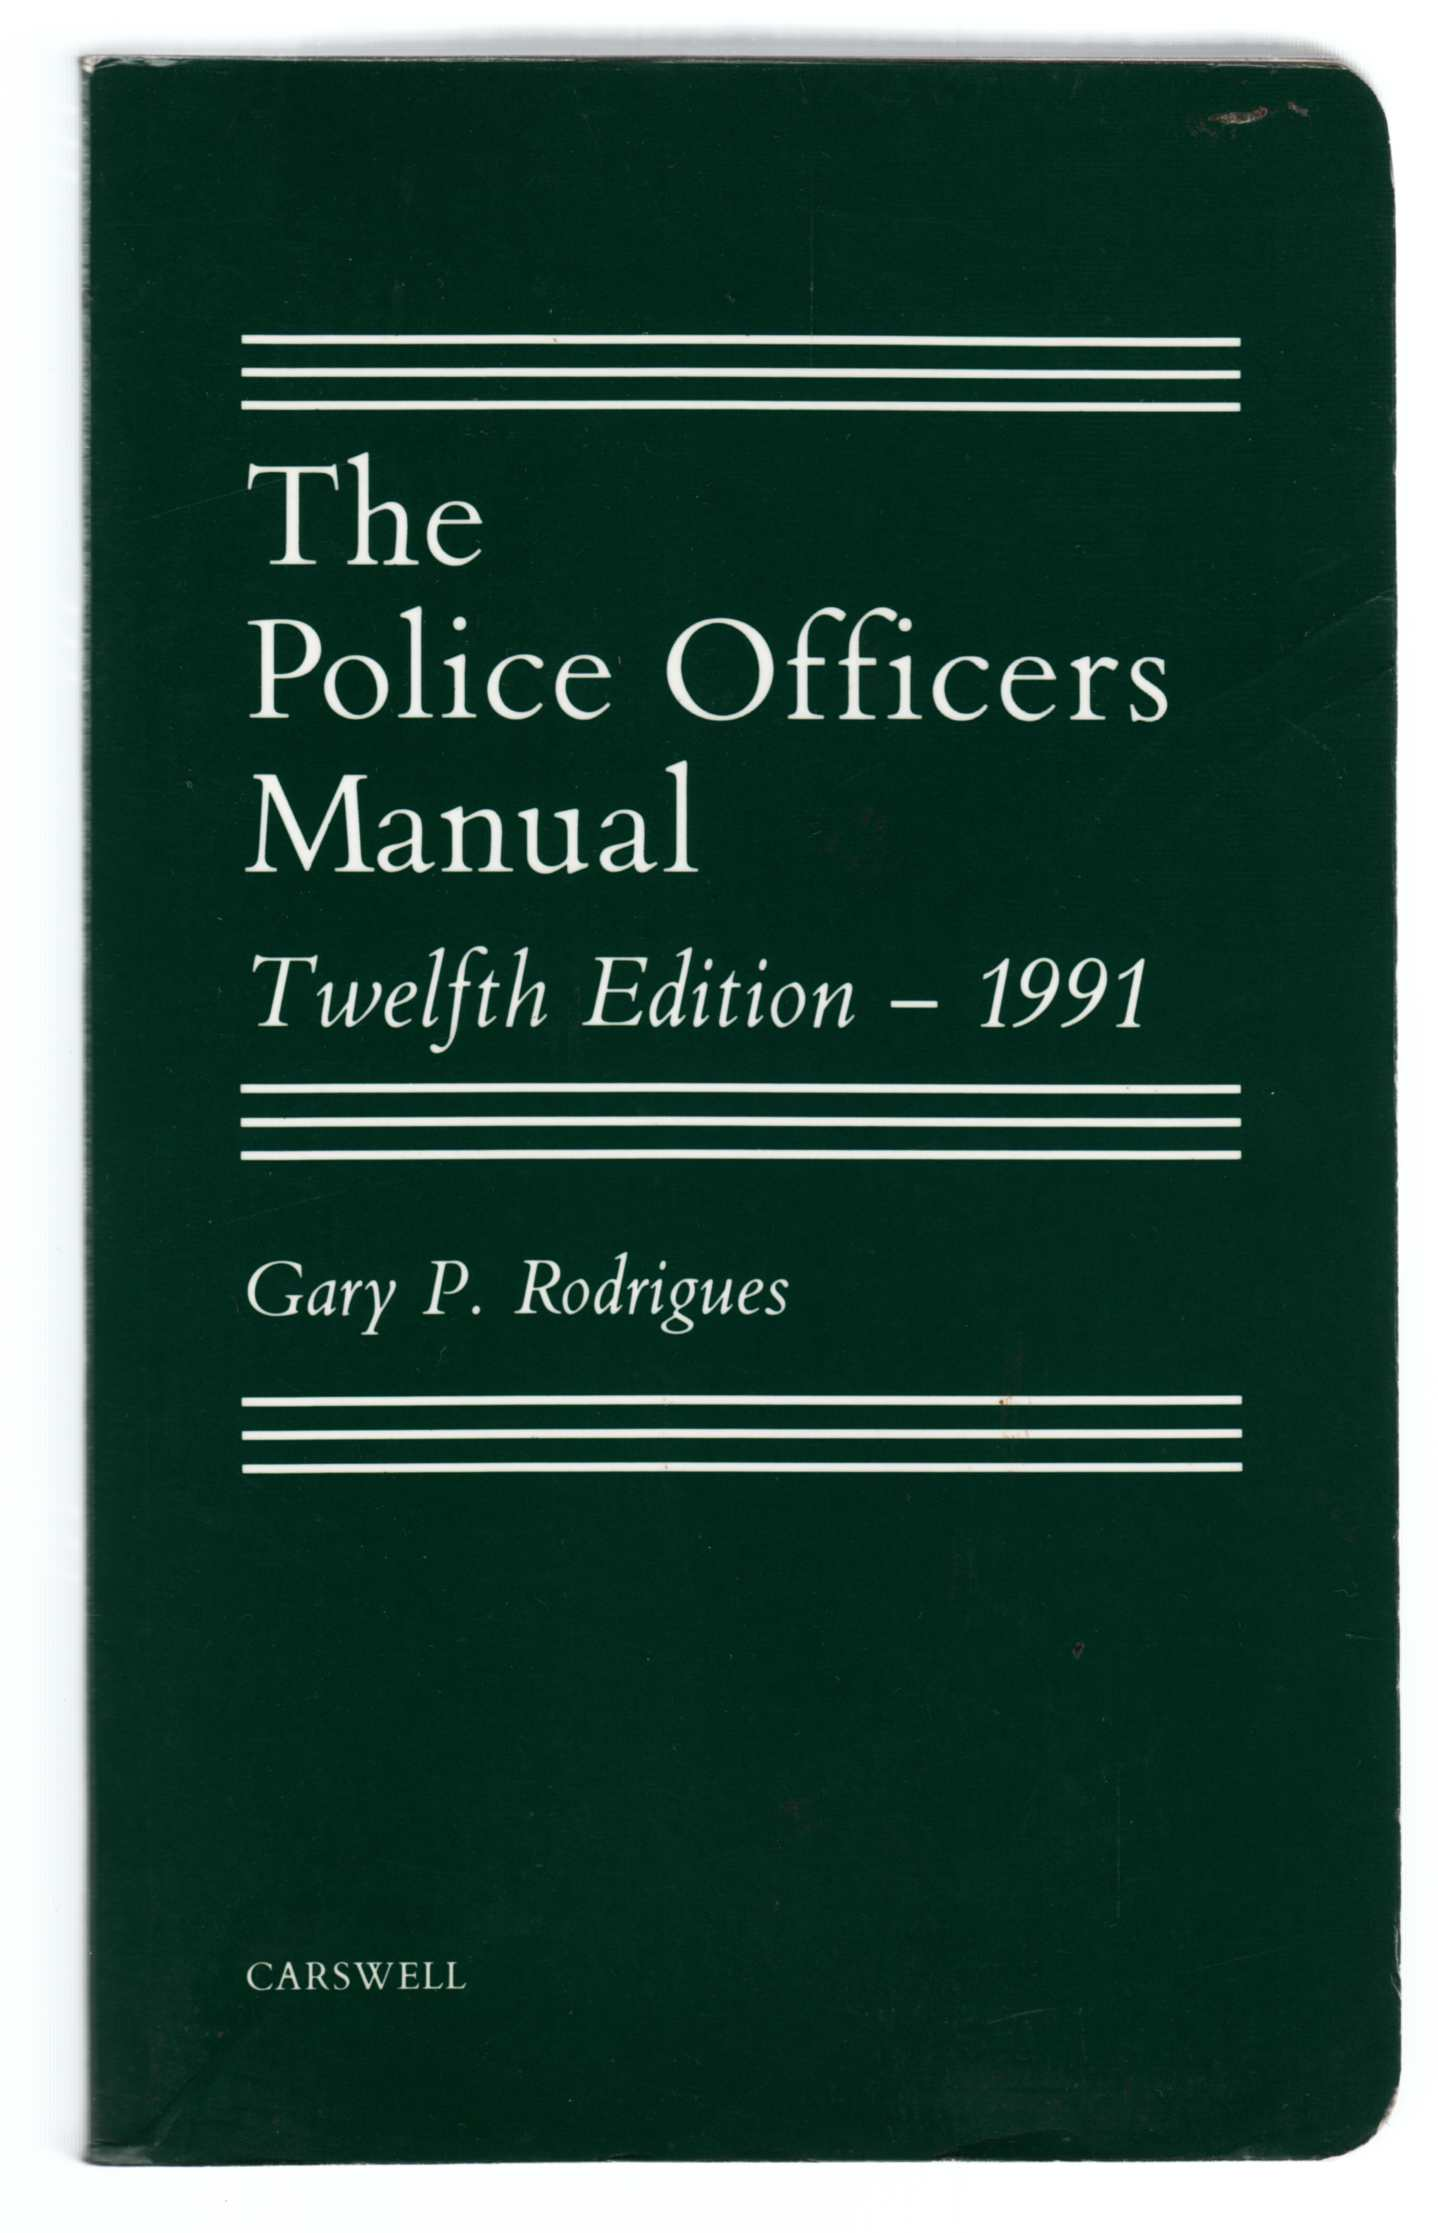 Image for The Police Officers Manual Twelfth Edition - 1991